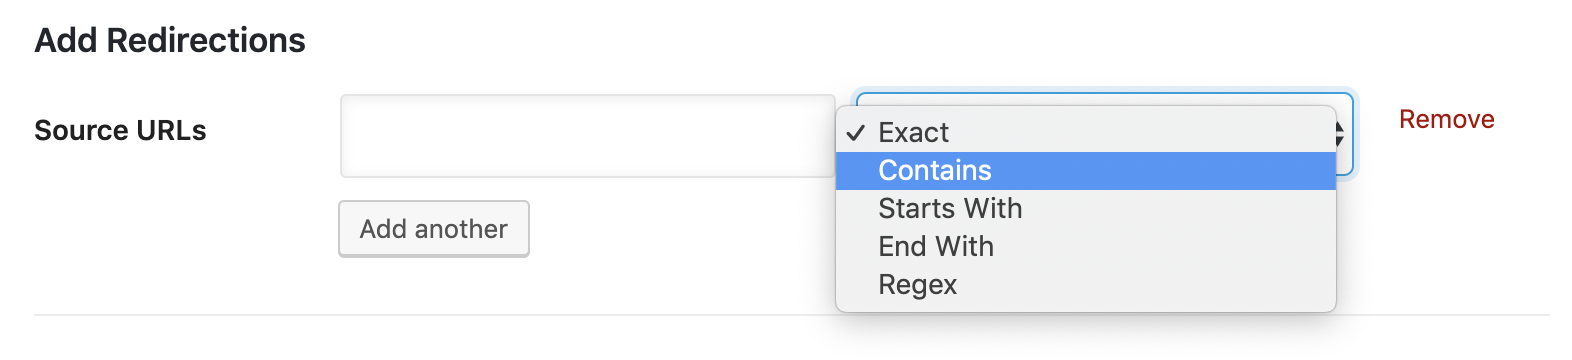 Using contains matching type for redirections with UTM parameters